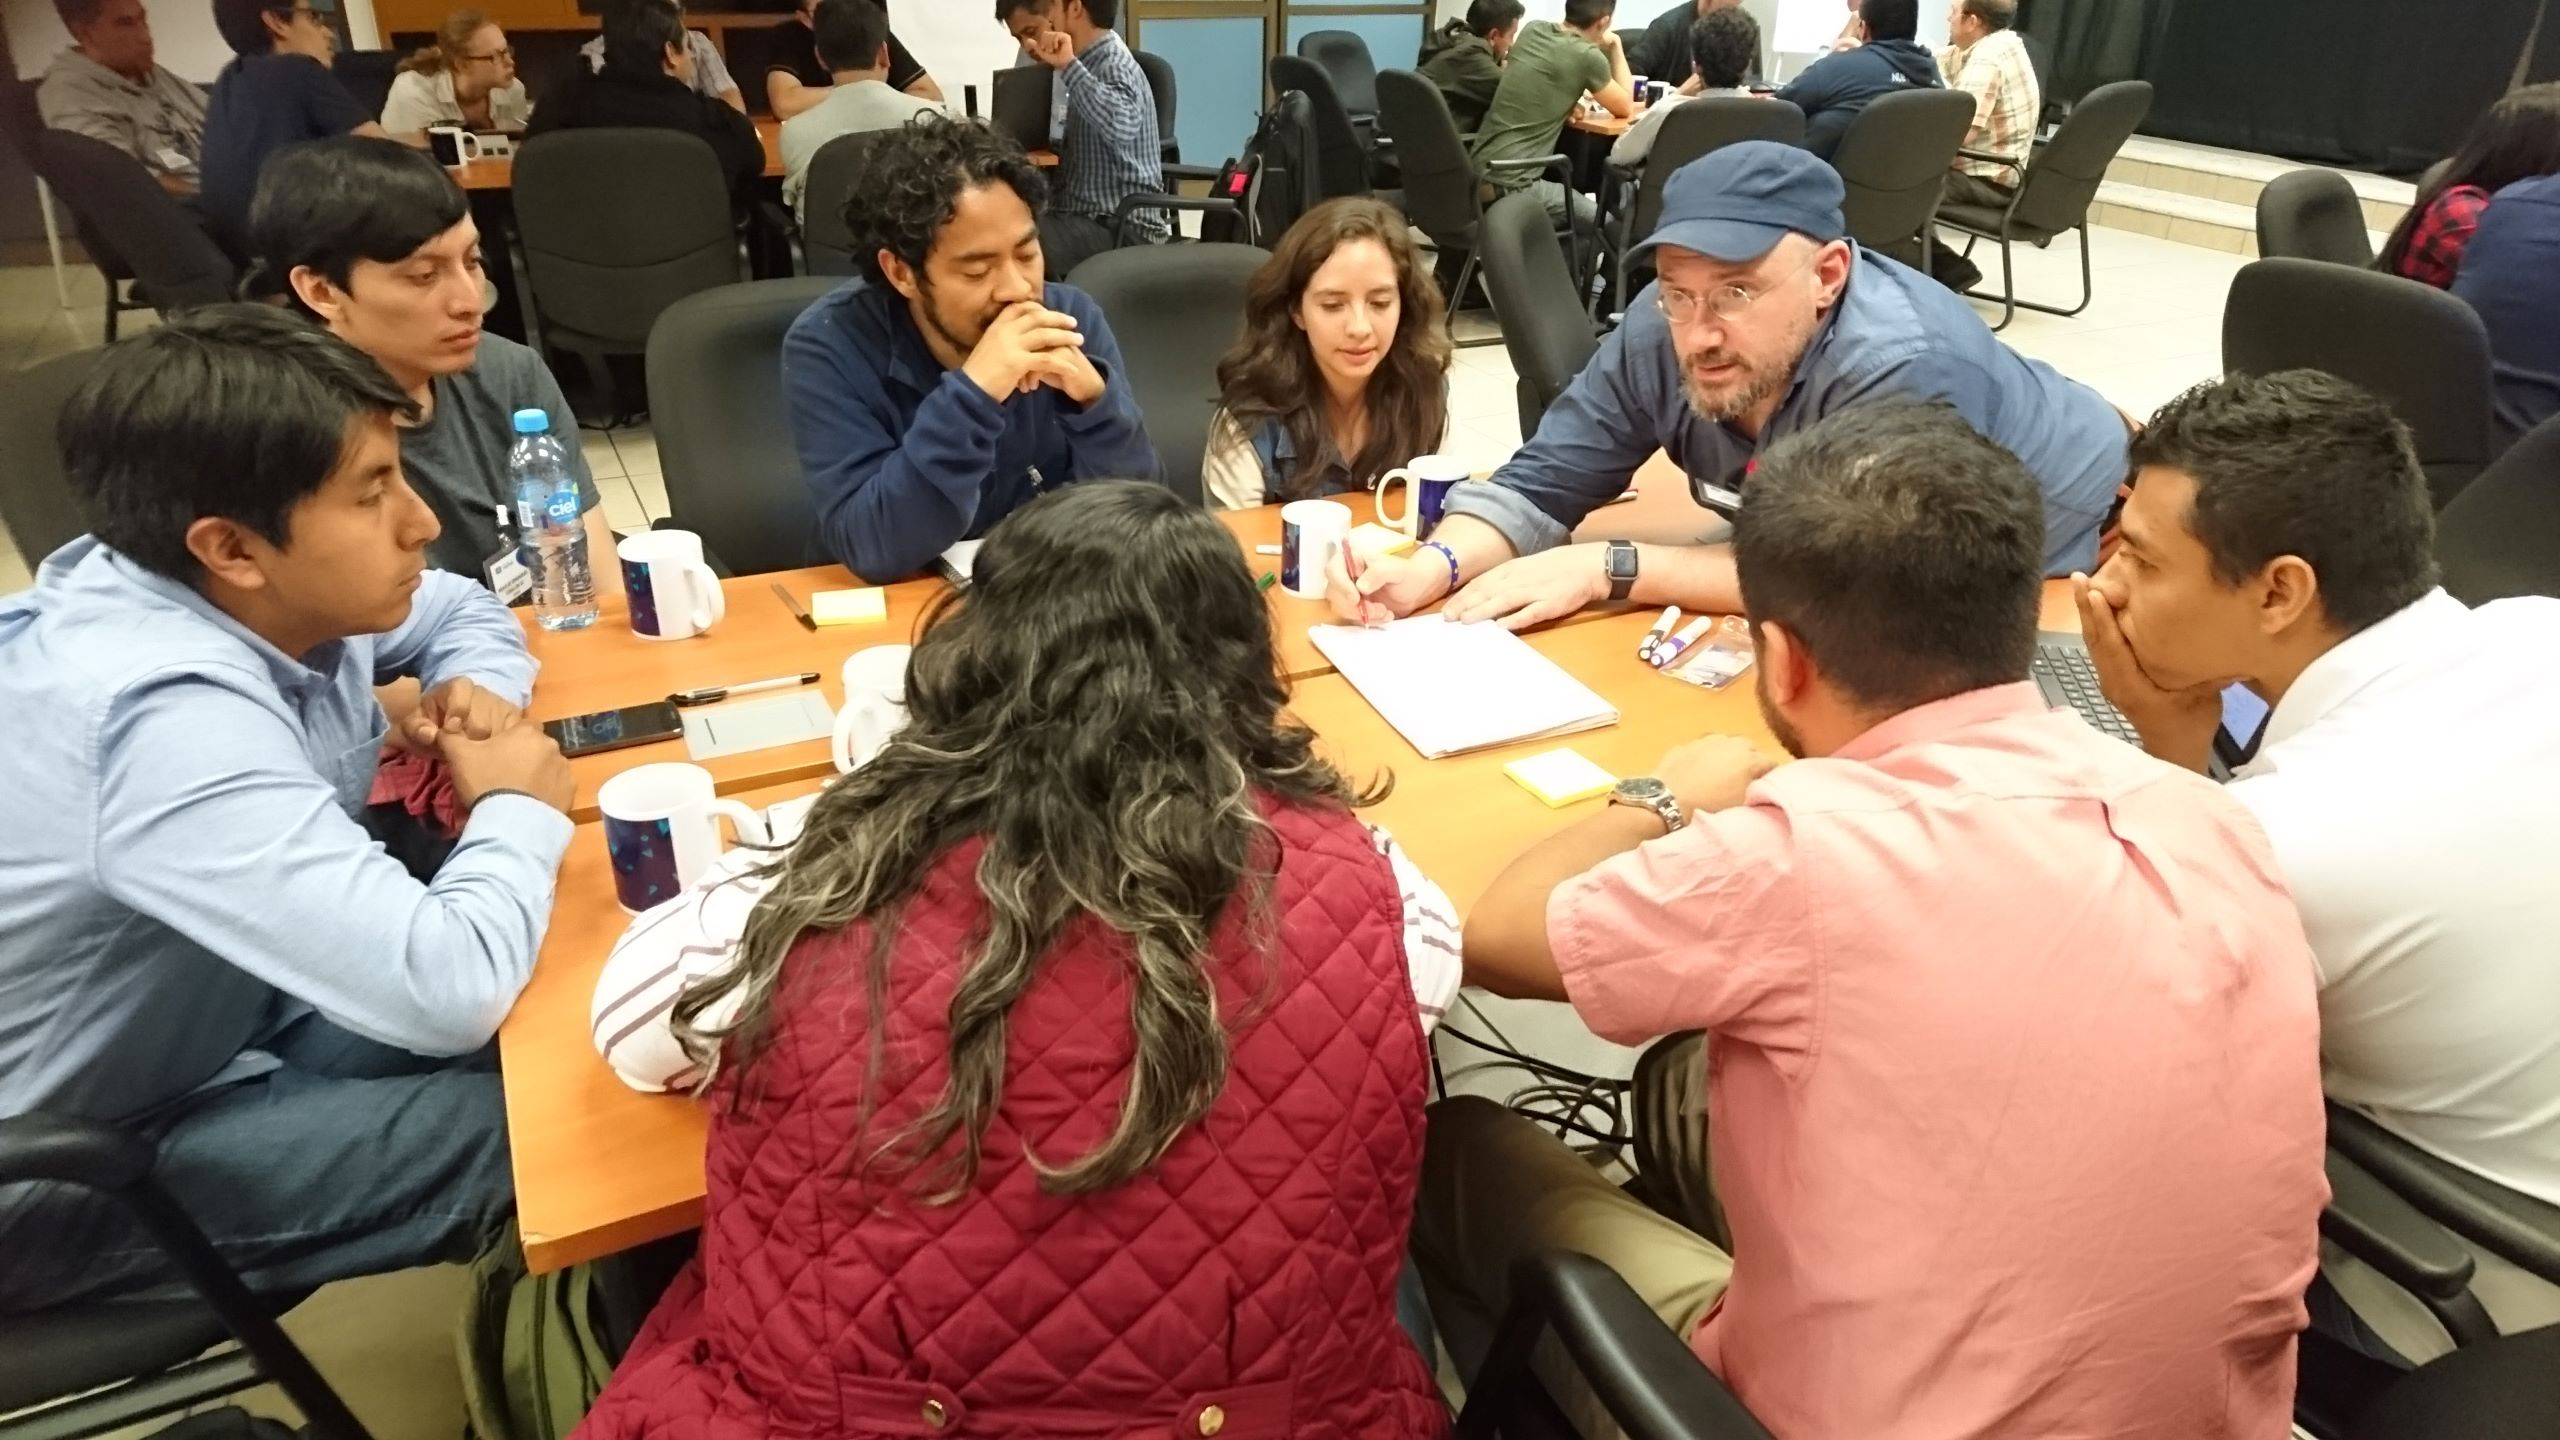 Group work with academics, students and partners at workshop in Mexico